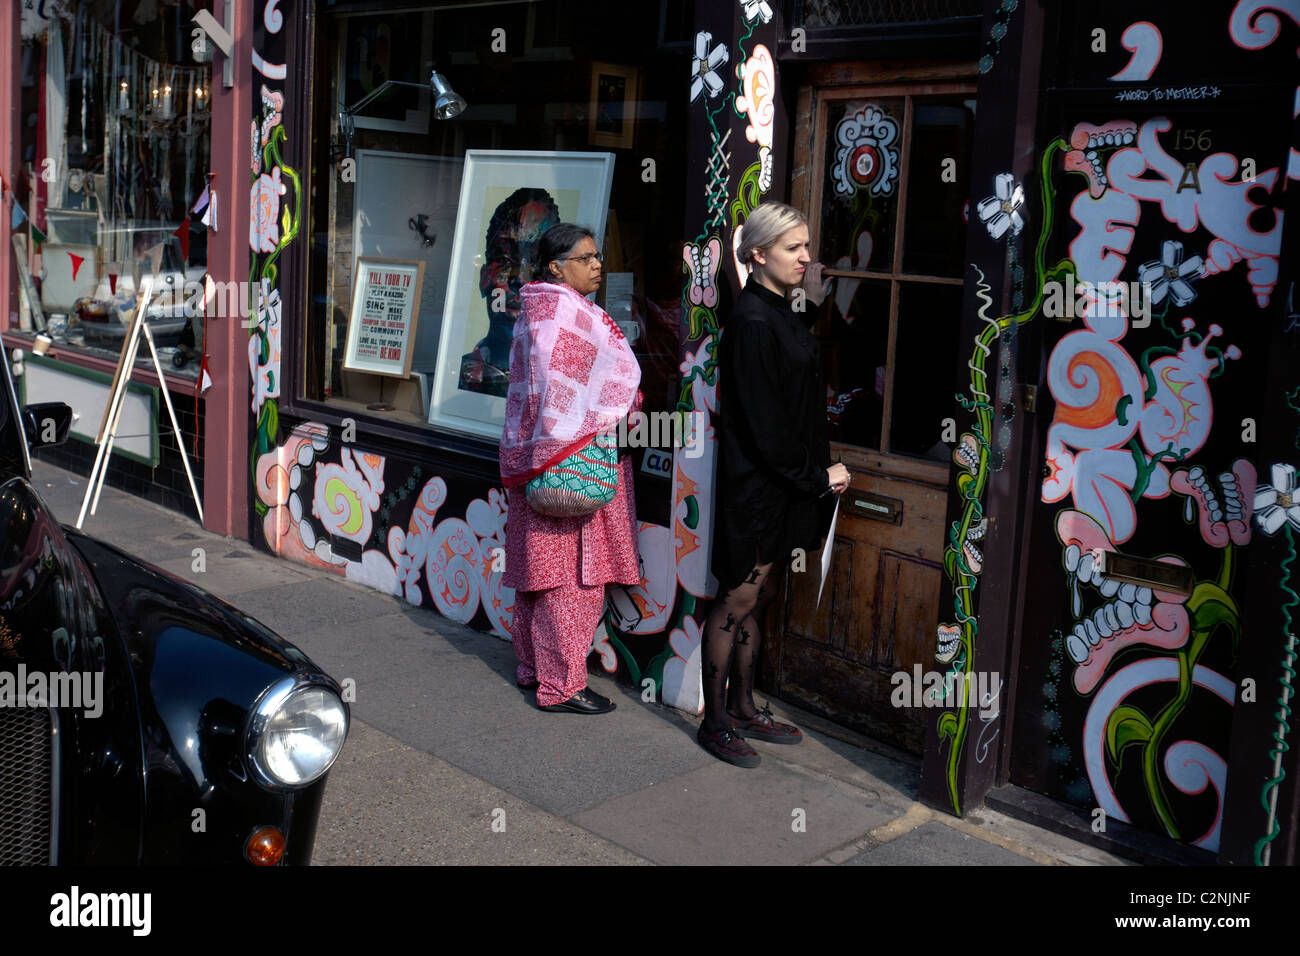 two women on columbia road in london - Stock Image